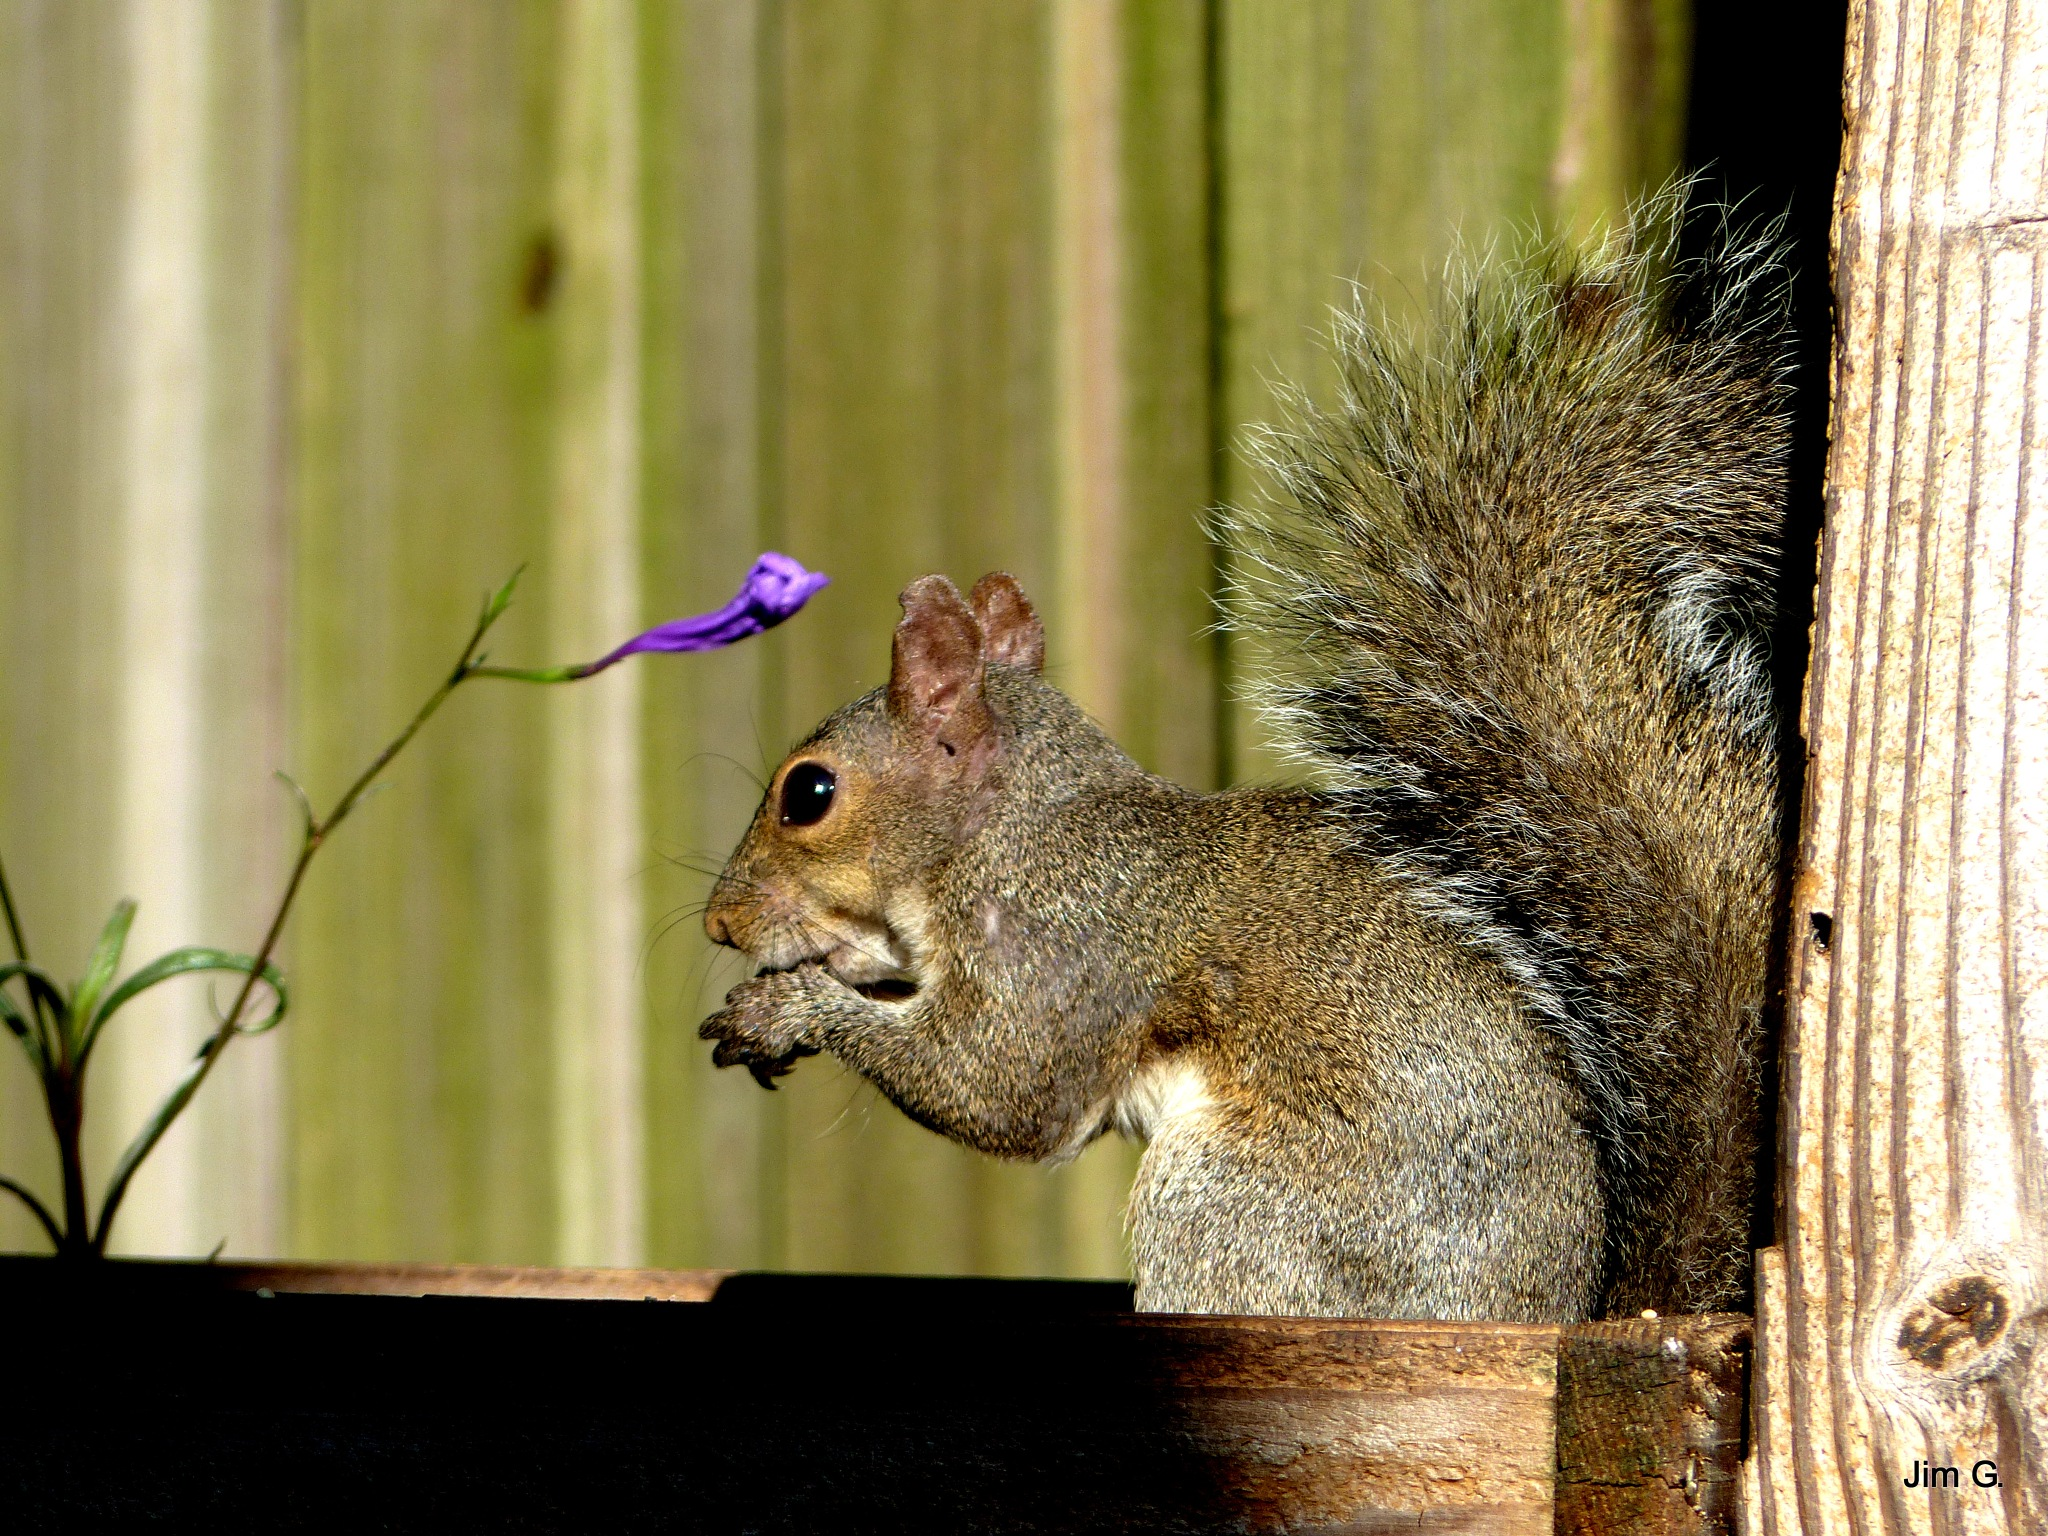 Squirrel eating beneath bloom by Jim Graham